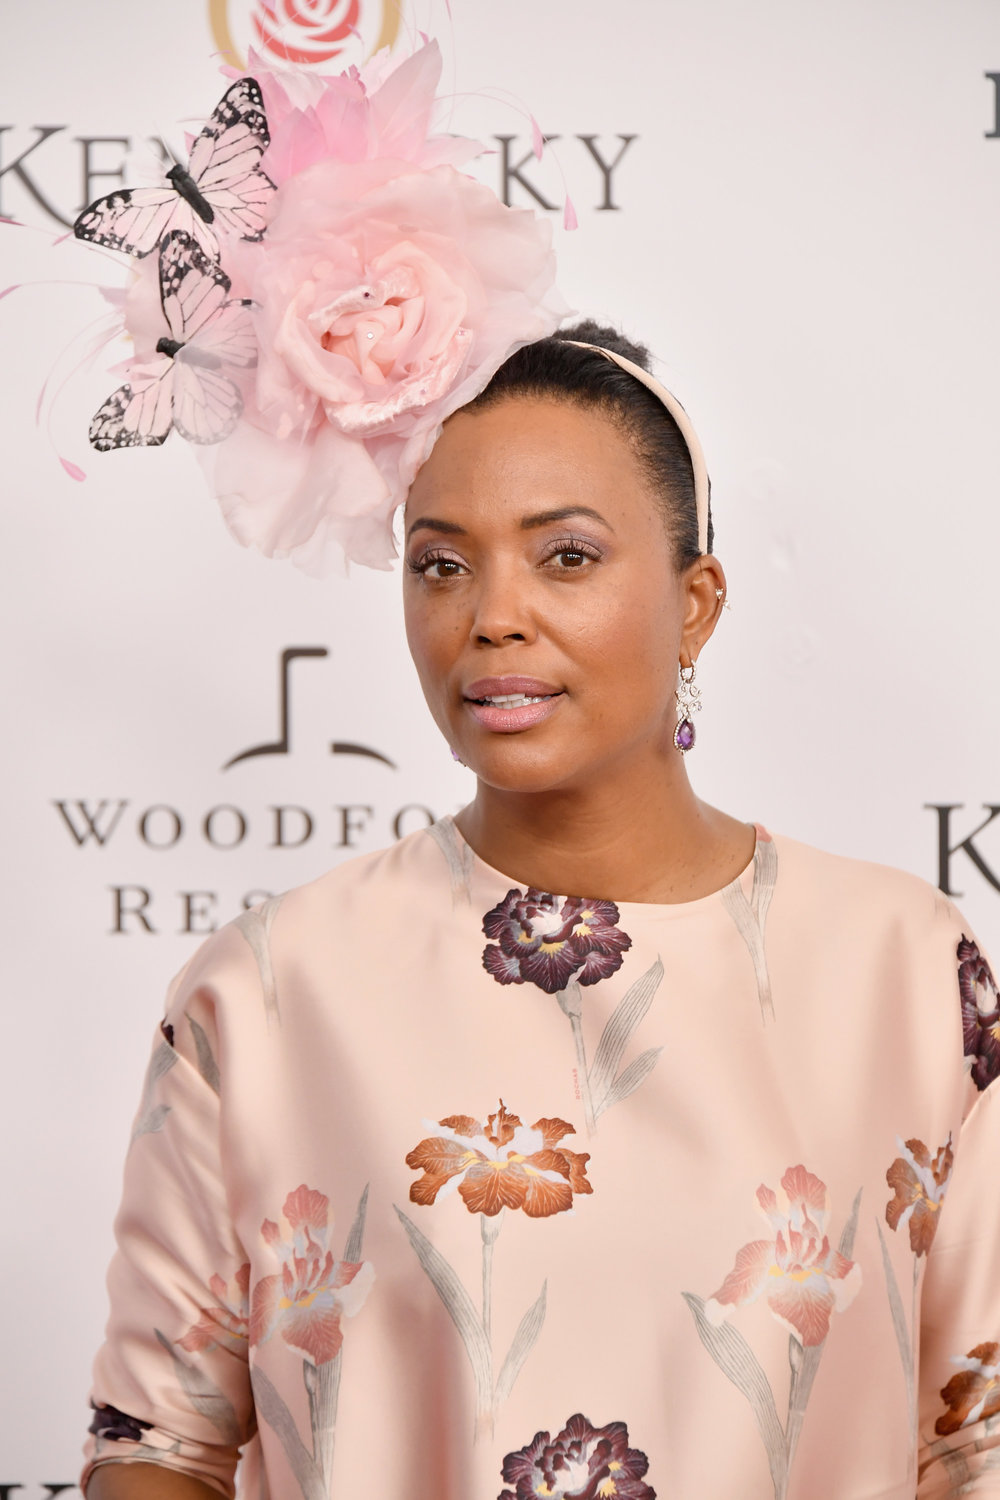 LOUISVILLE, KY - MAY 05: Actress Aisha Tyler attends Kentucky Derby 144 on May 5, 2018 in Louisville, Kentucky.  (Photo by Michael Loccisano/Getty Images for Churchill Downs) *** Local Caption *** Aisha Tyler